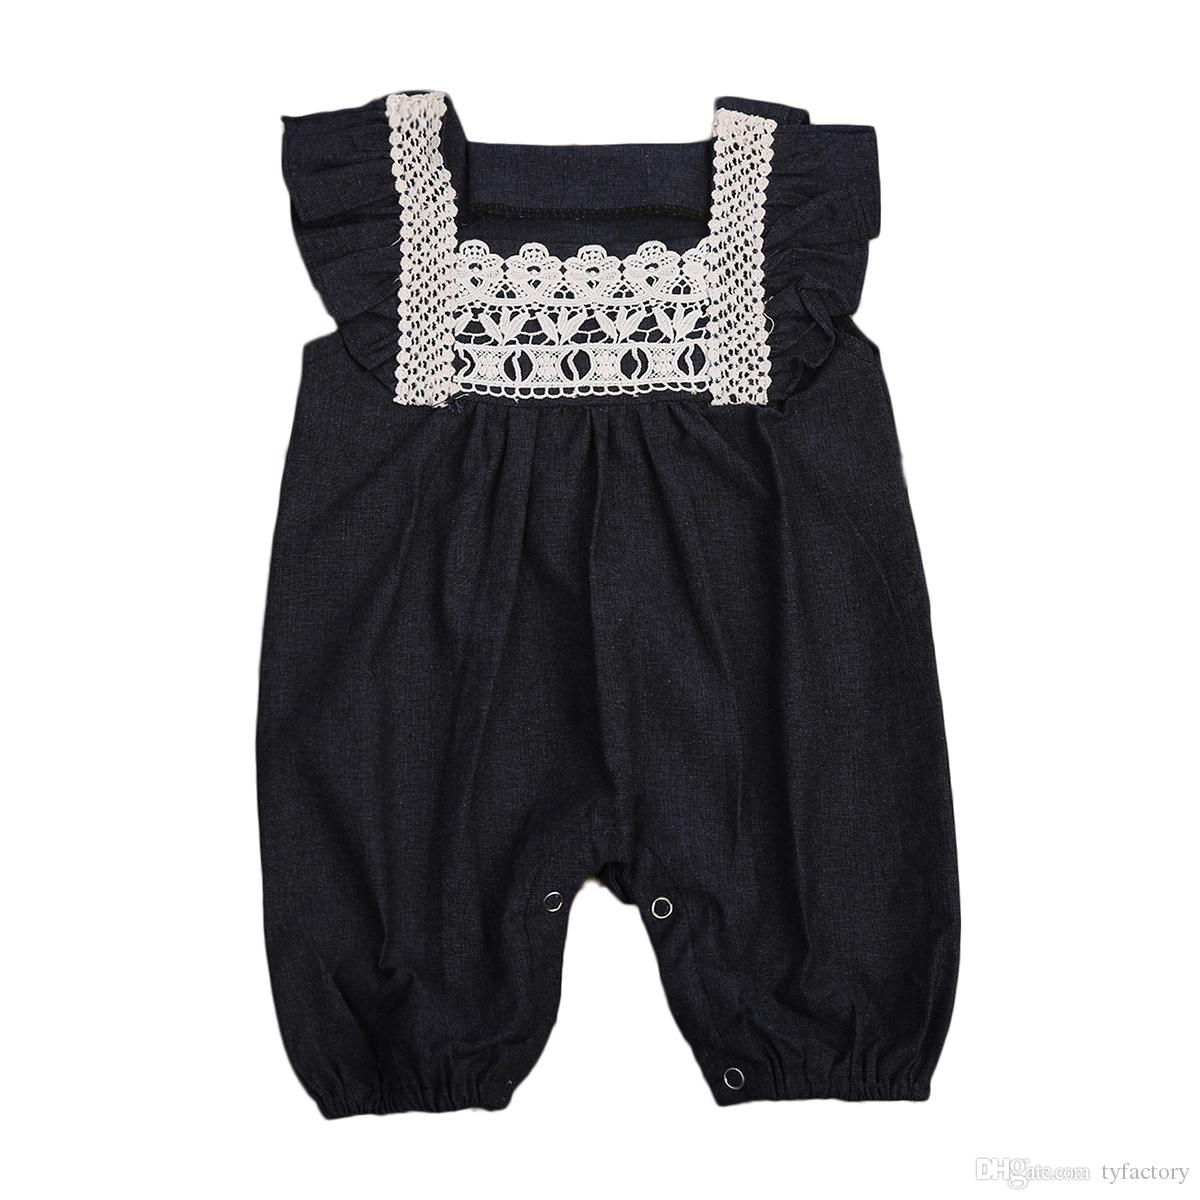 81fd731b5 2019 Newborn Infant Baby Girls Black Romper White Lace Sleeveless ...